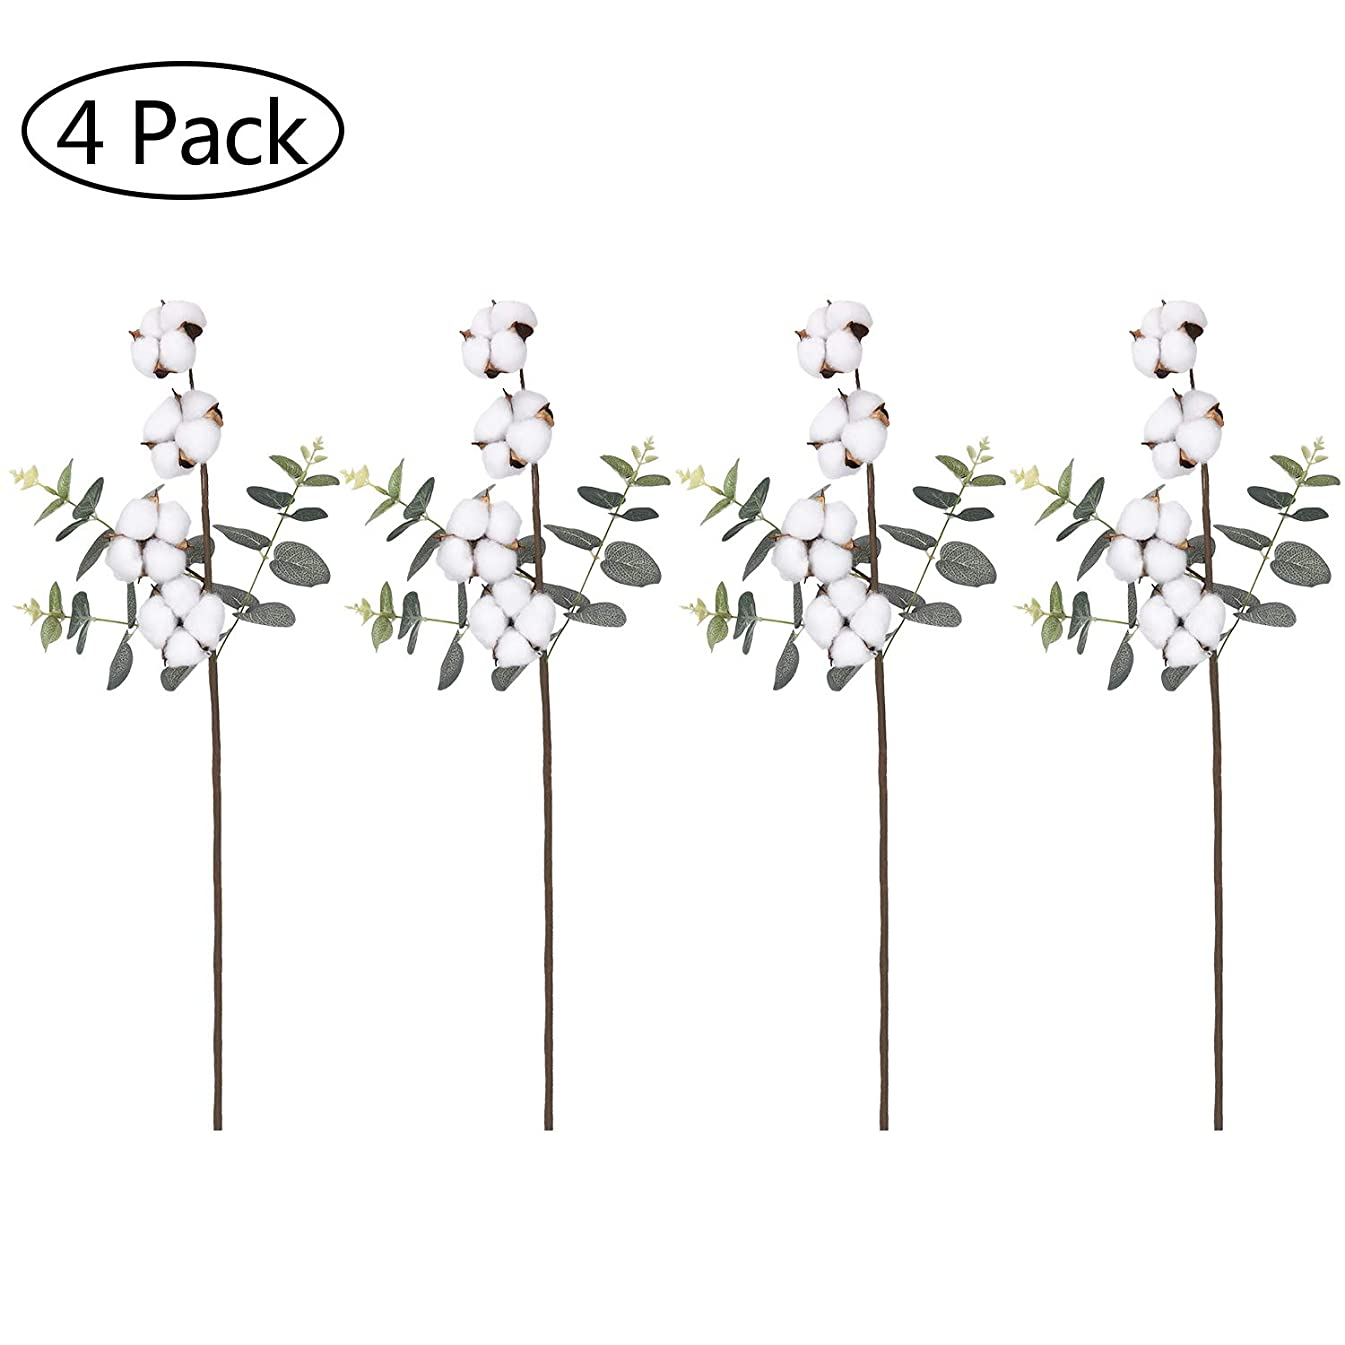 Sunm boutique Cotton Stems with Eucalyptus Leaves, 21 Inches Natural Cotton Spray Mixed Artificial Eucalyptus, Artificial Decorative Flower for DIY Party Home Decor(Set of 4)